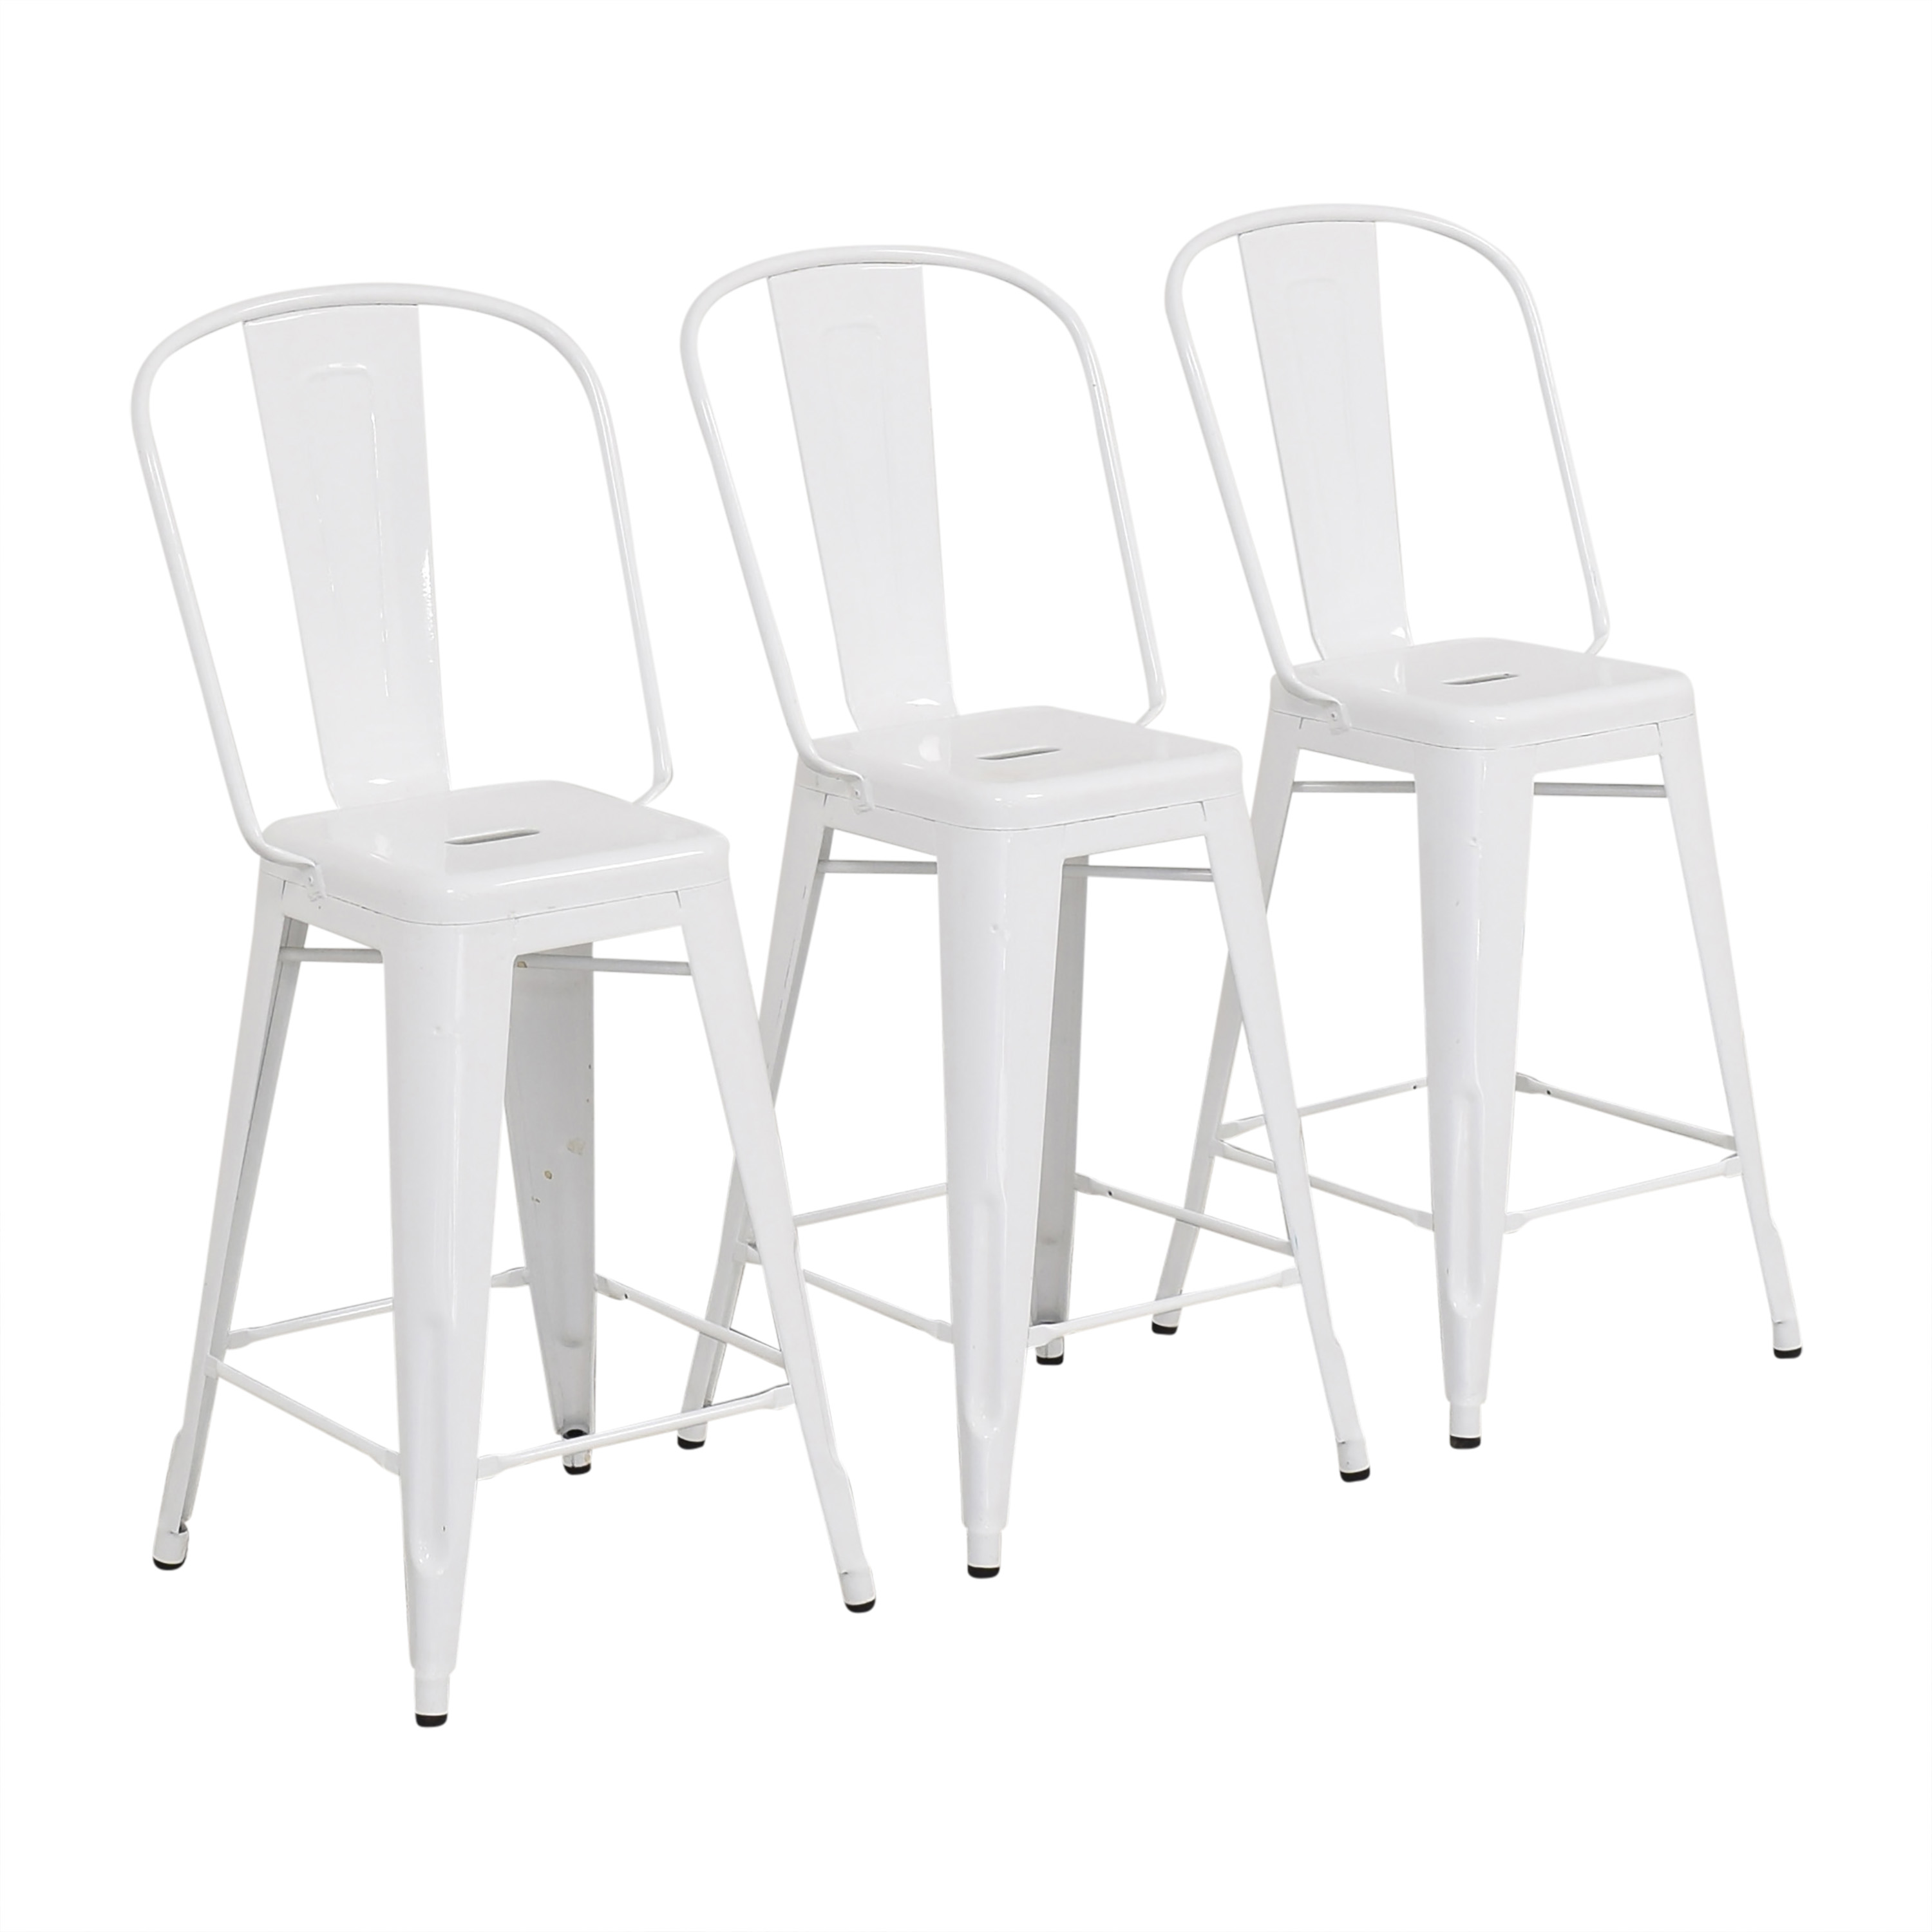 Tolix Tolix Marais High Back Counter Stools price